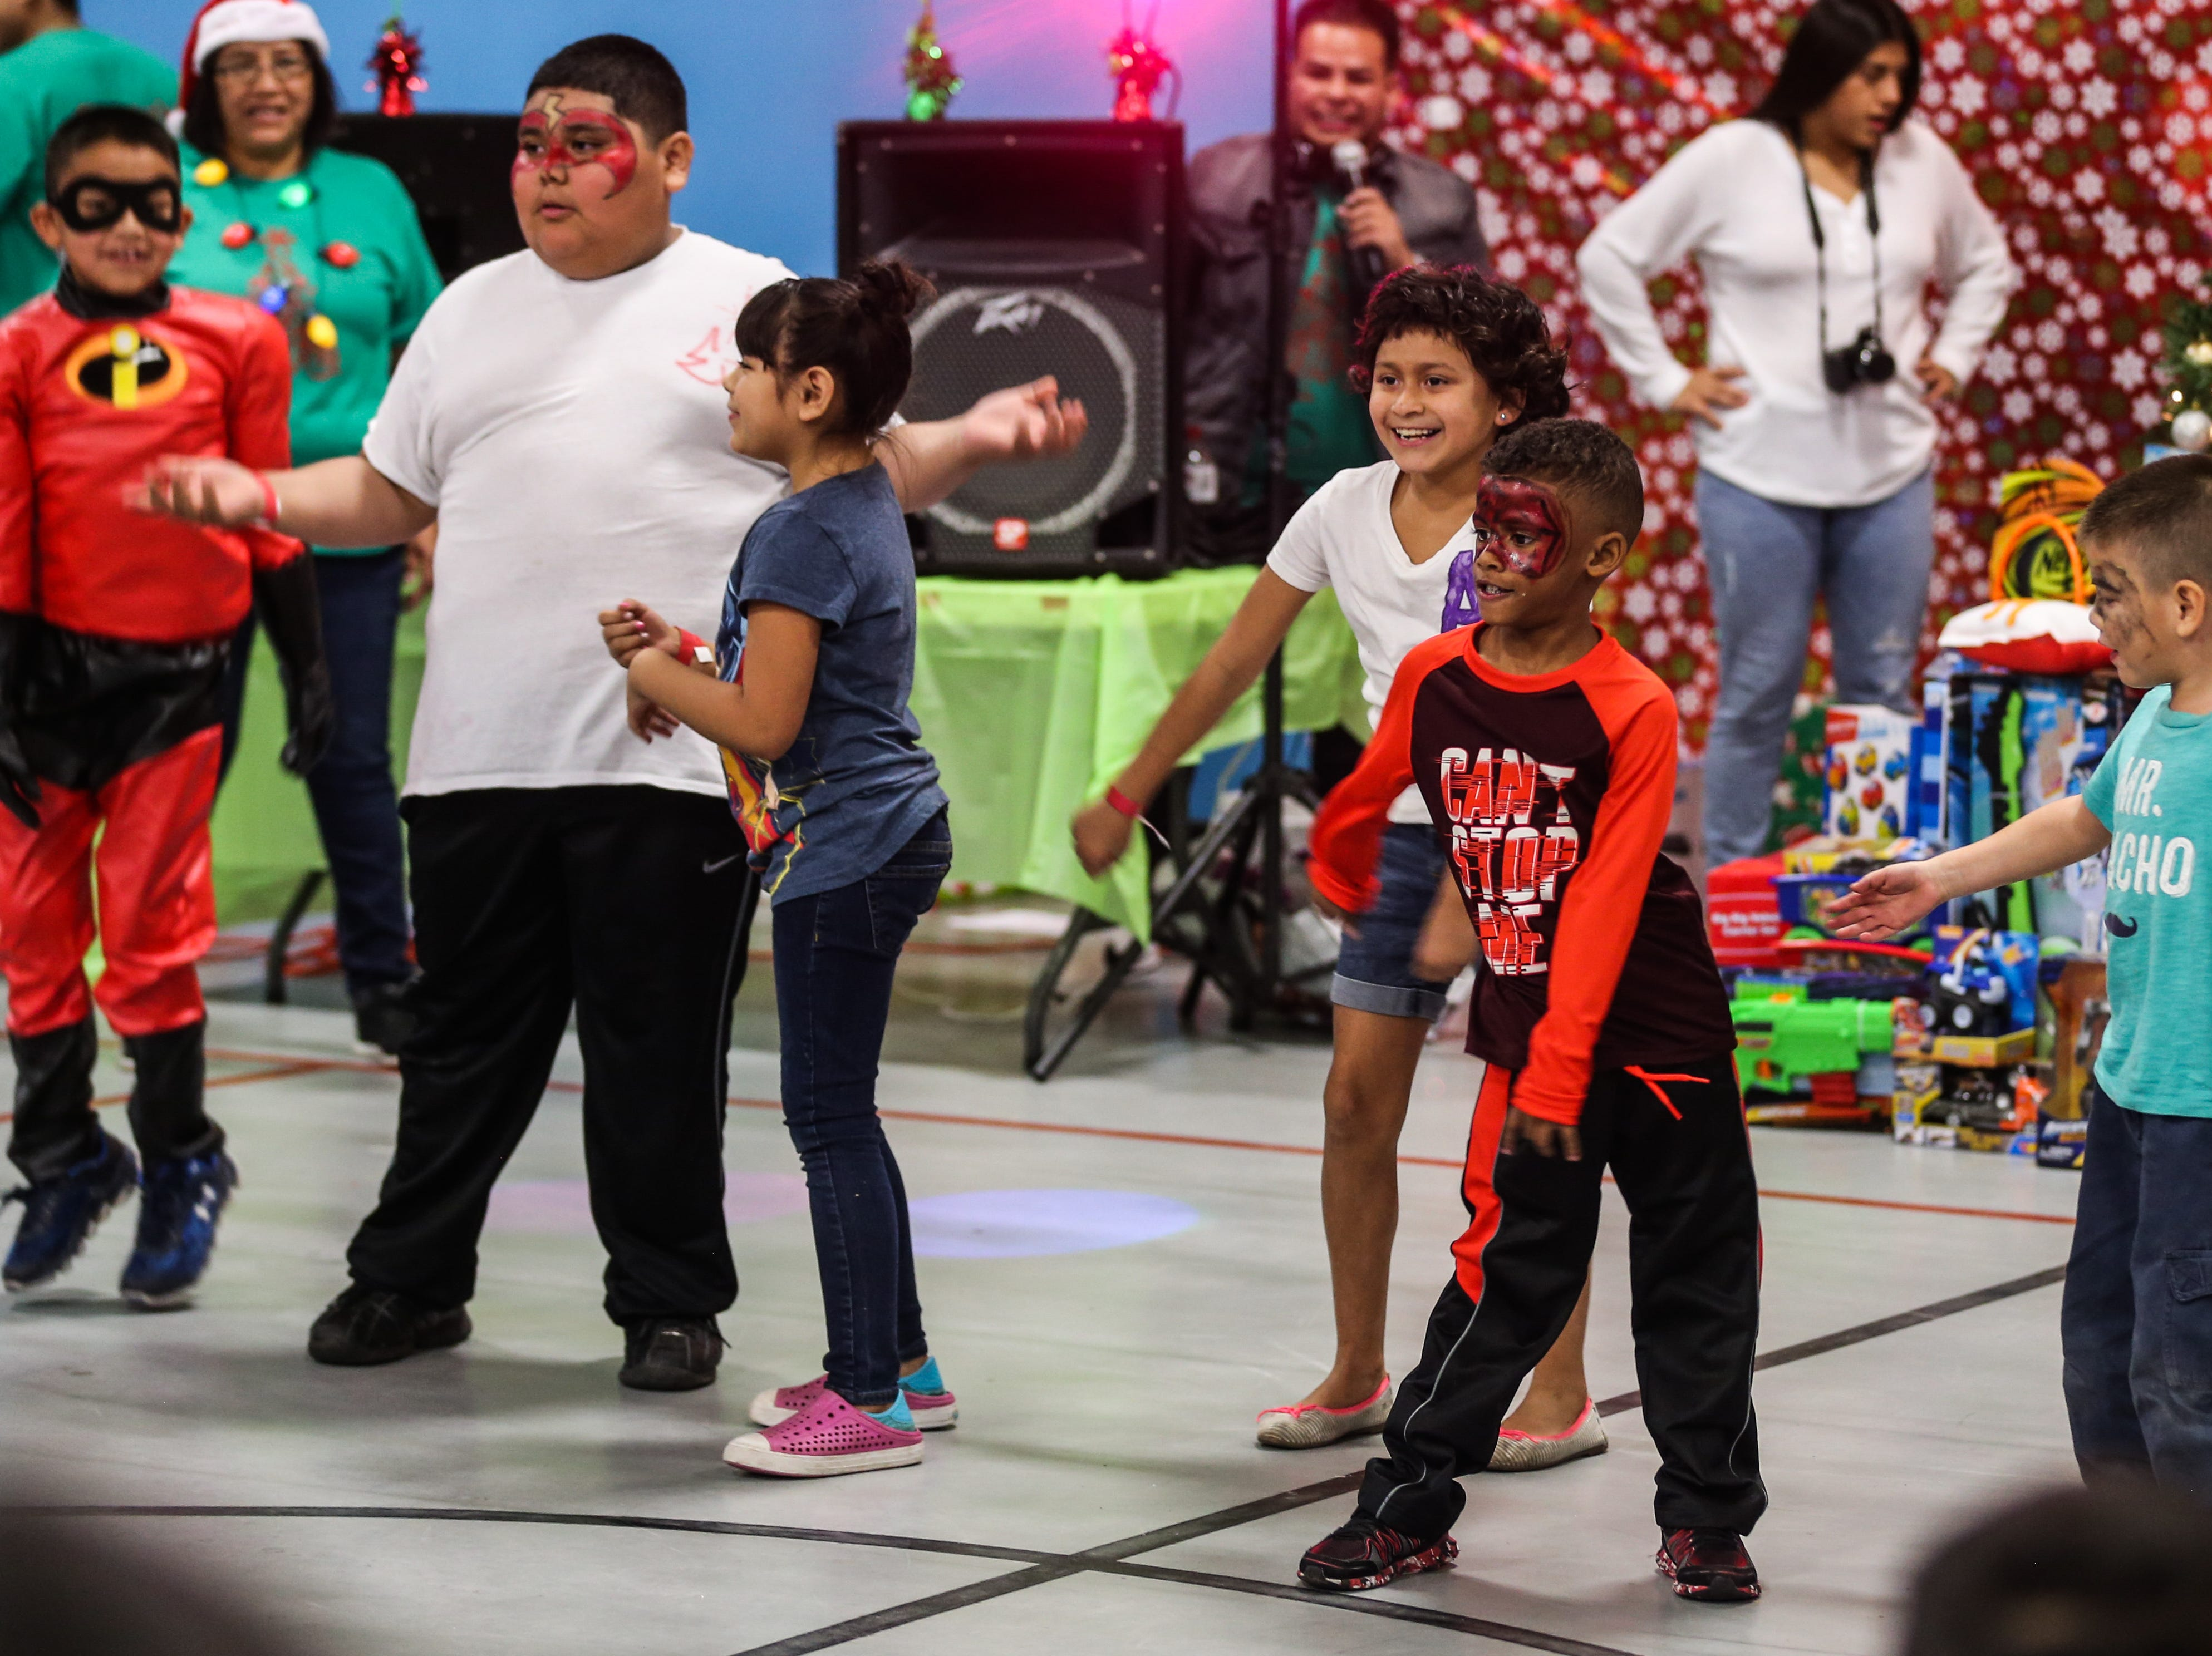 Kids dance for a contest during the In the Spirit of Christmas party Saturday, Dec. 15, 2018, at the Southside Recreation Center.